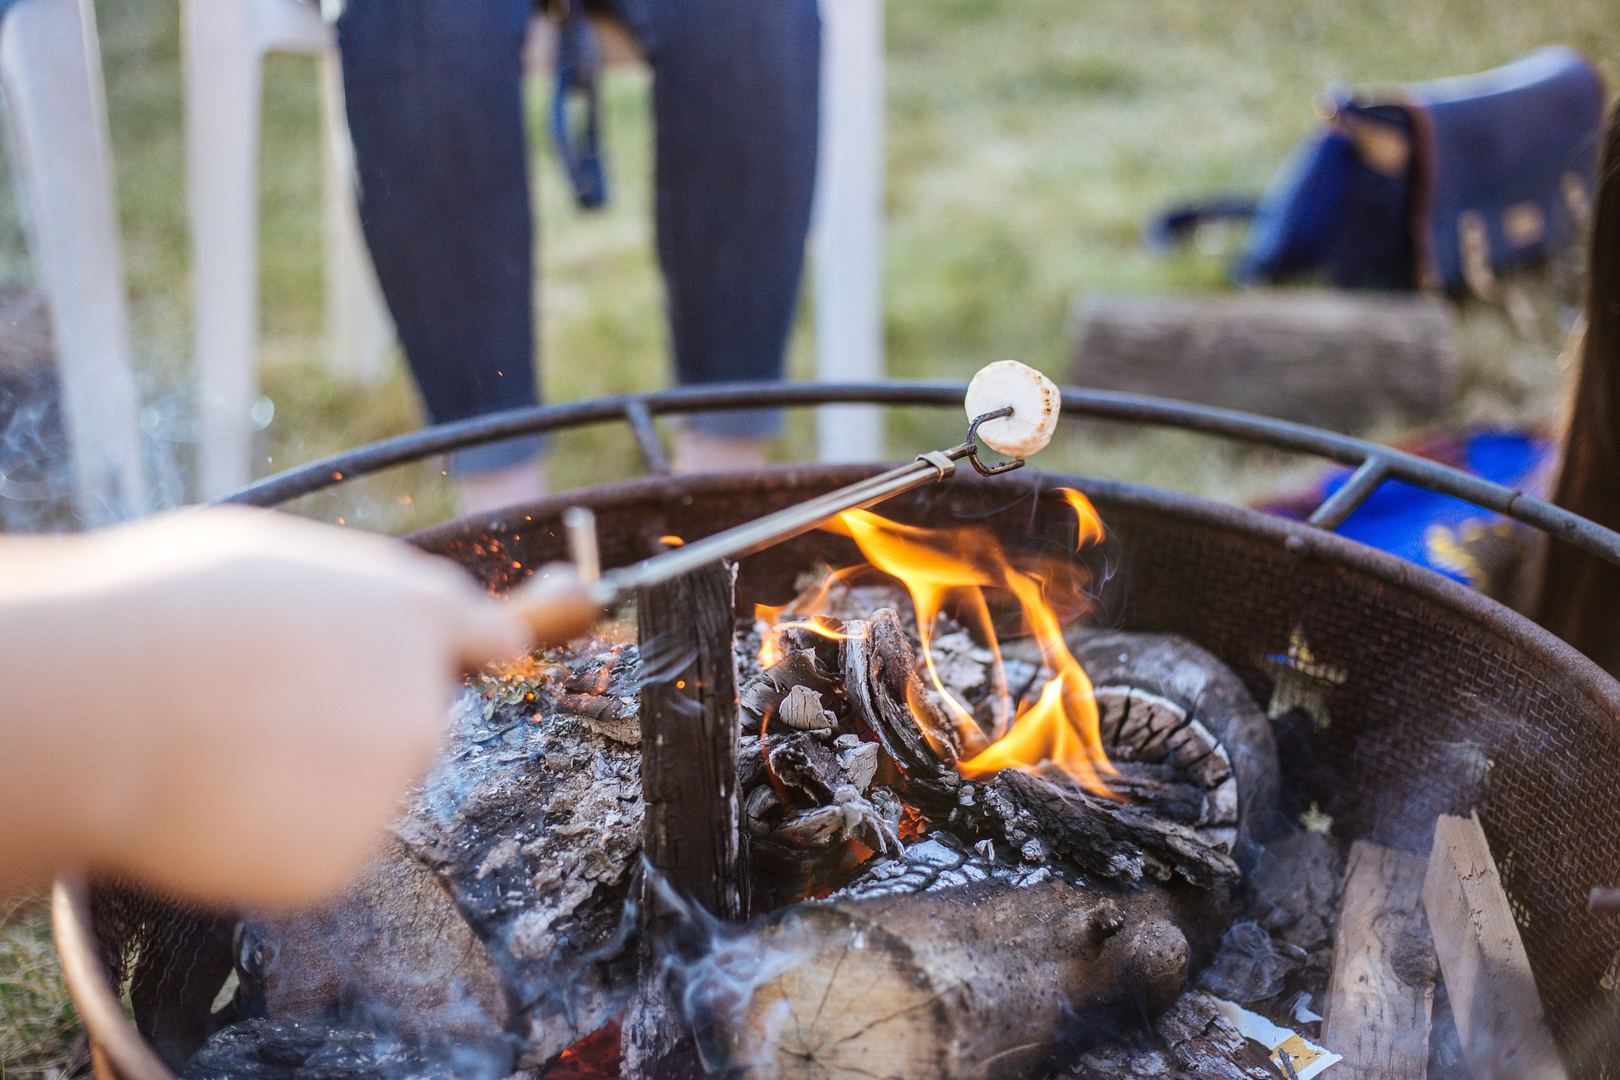 Fire campfire hold holding